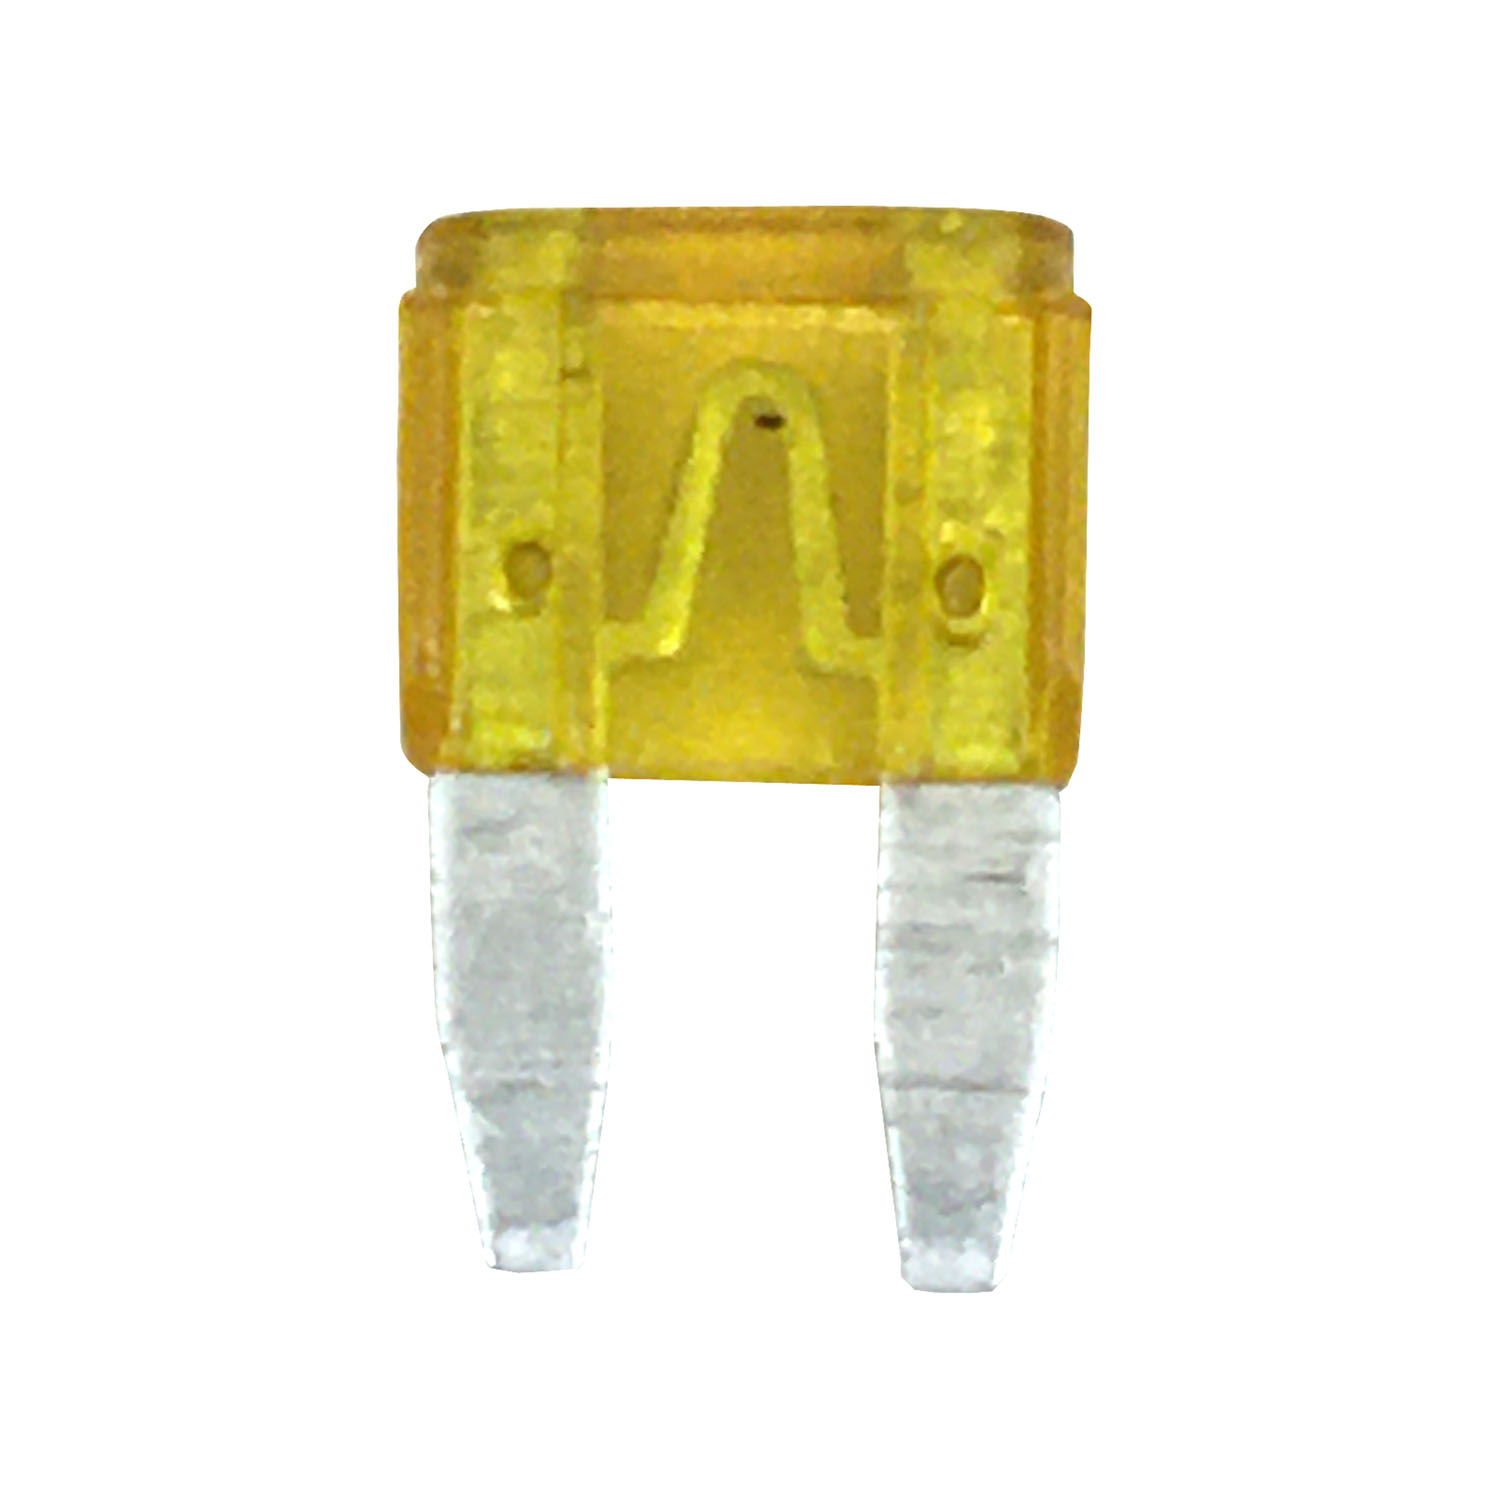 AST20X - Twinpoint 20 Amp Mini Blade Fuse (Bulk) Individually Sold